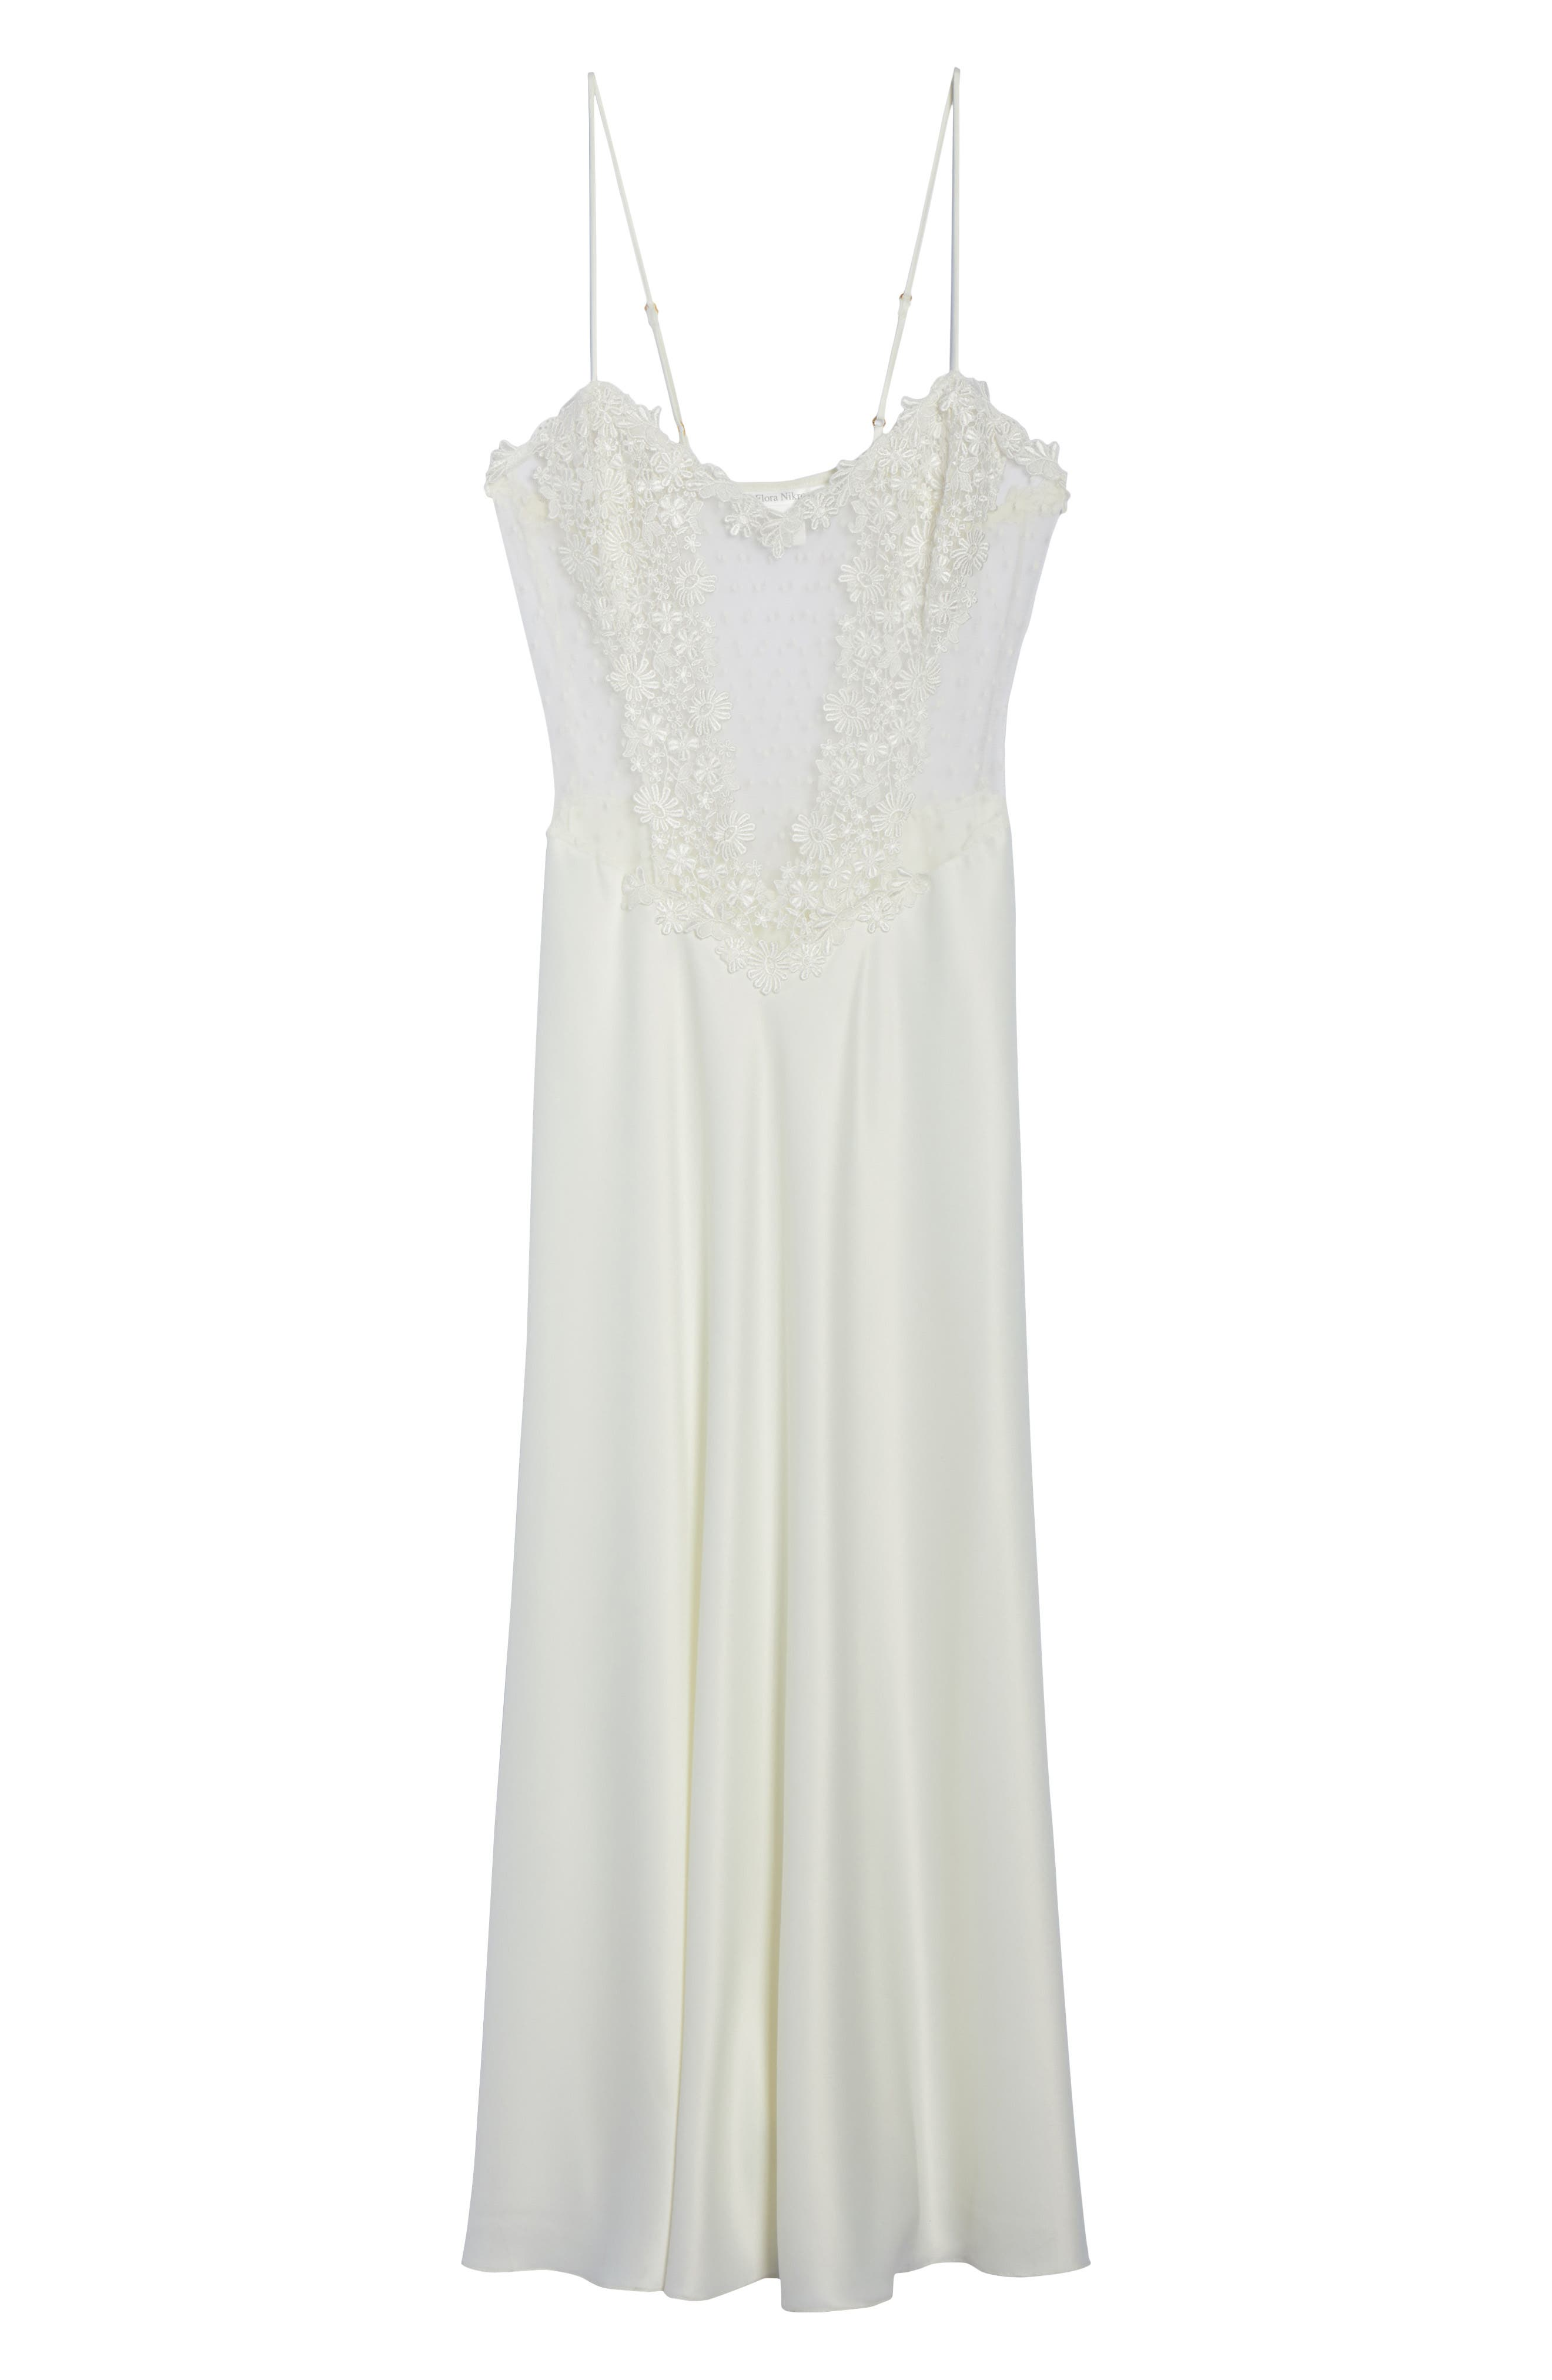 Showstopper Nightgown,                             Alternate thumbnail 6, color,                             Ivory